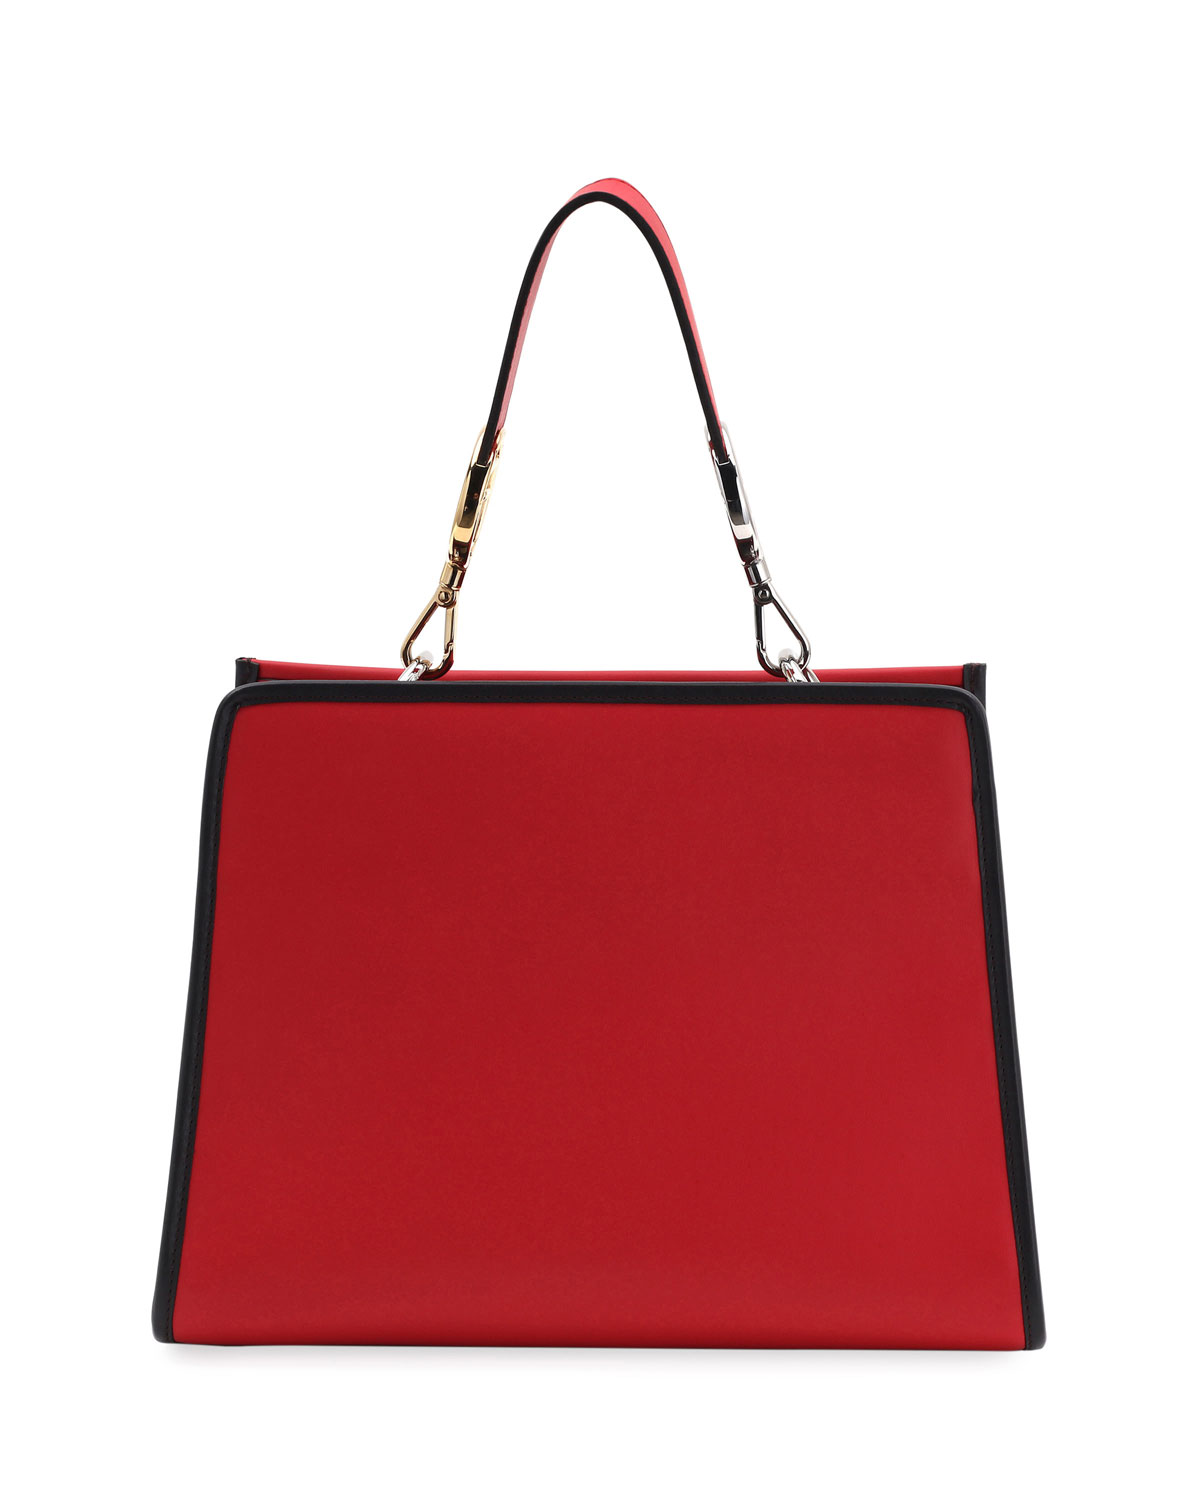 Fendi Runaway Small Embroidered Century Tote Bag, Red